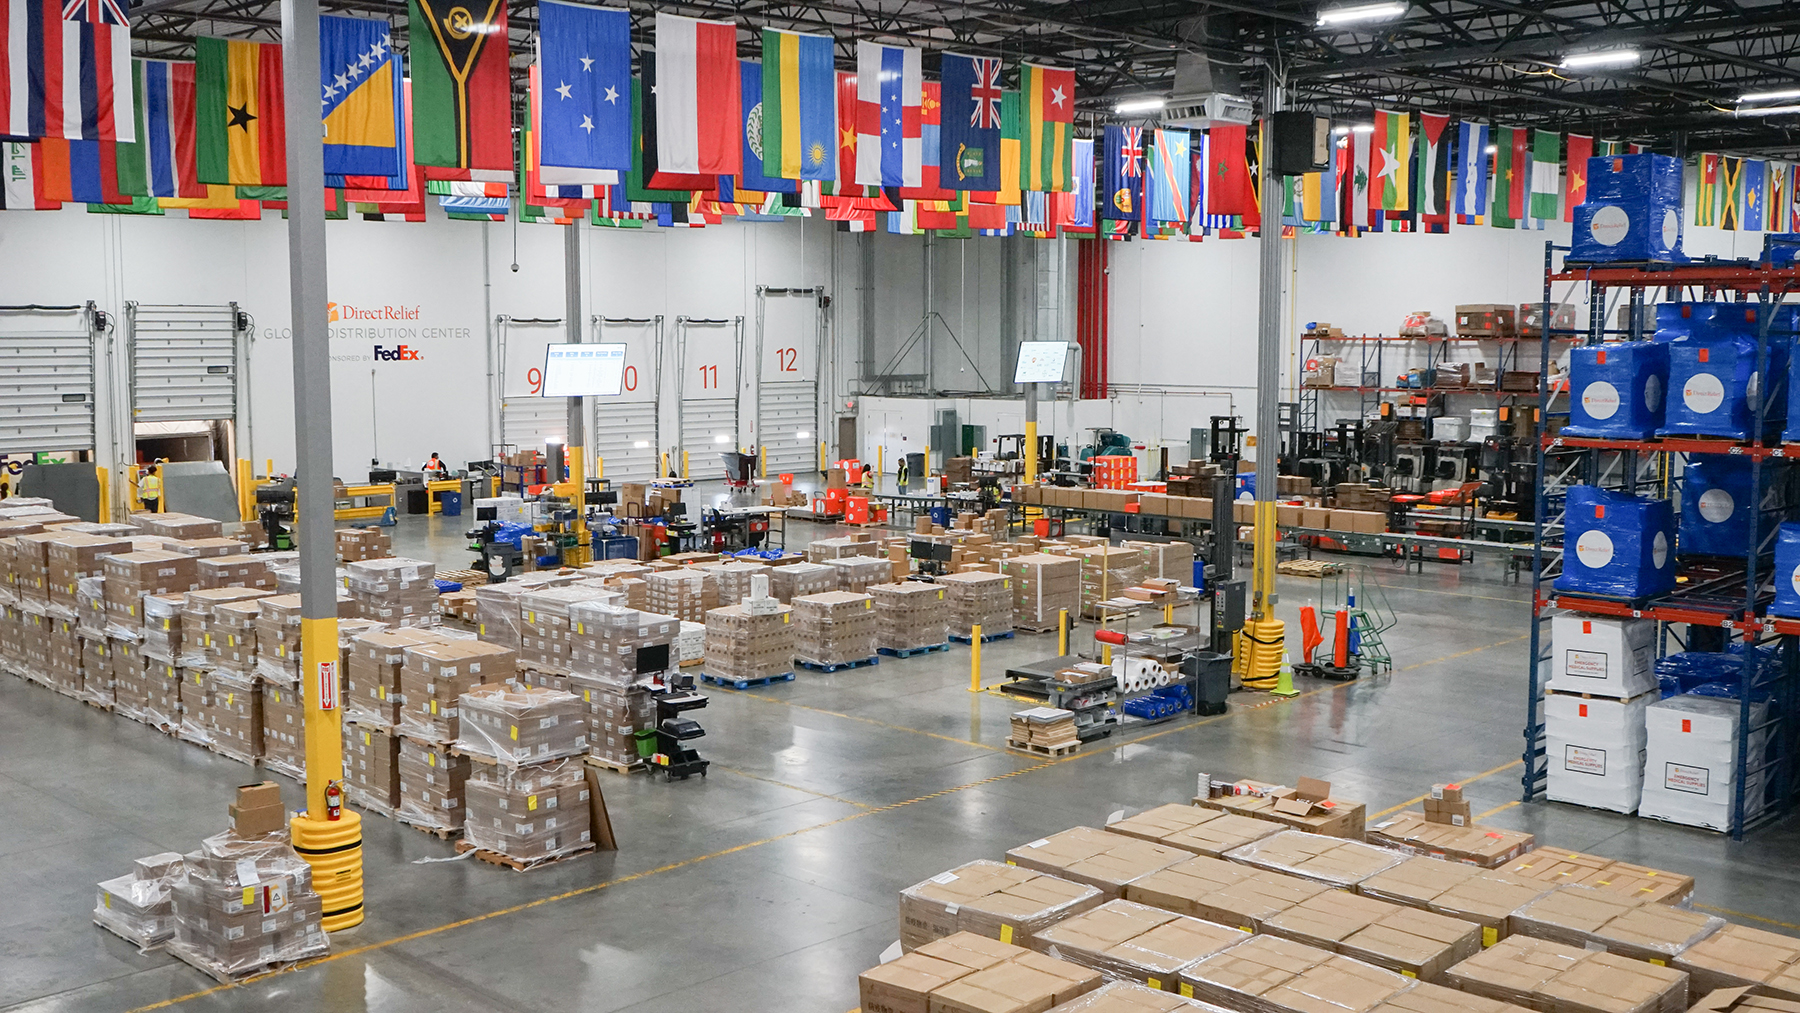 Shipments of medical aid depart Direct Relief's warehouse on August 30, 2021. The organization has committed inventory and funding for Hurricane Ida response as recovery continues. (Lara Cooper/Direct Relief)